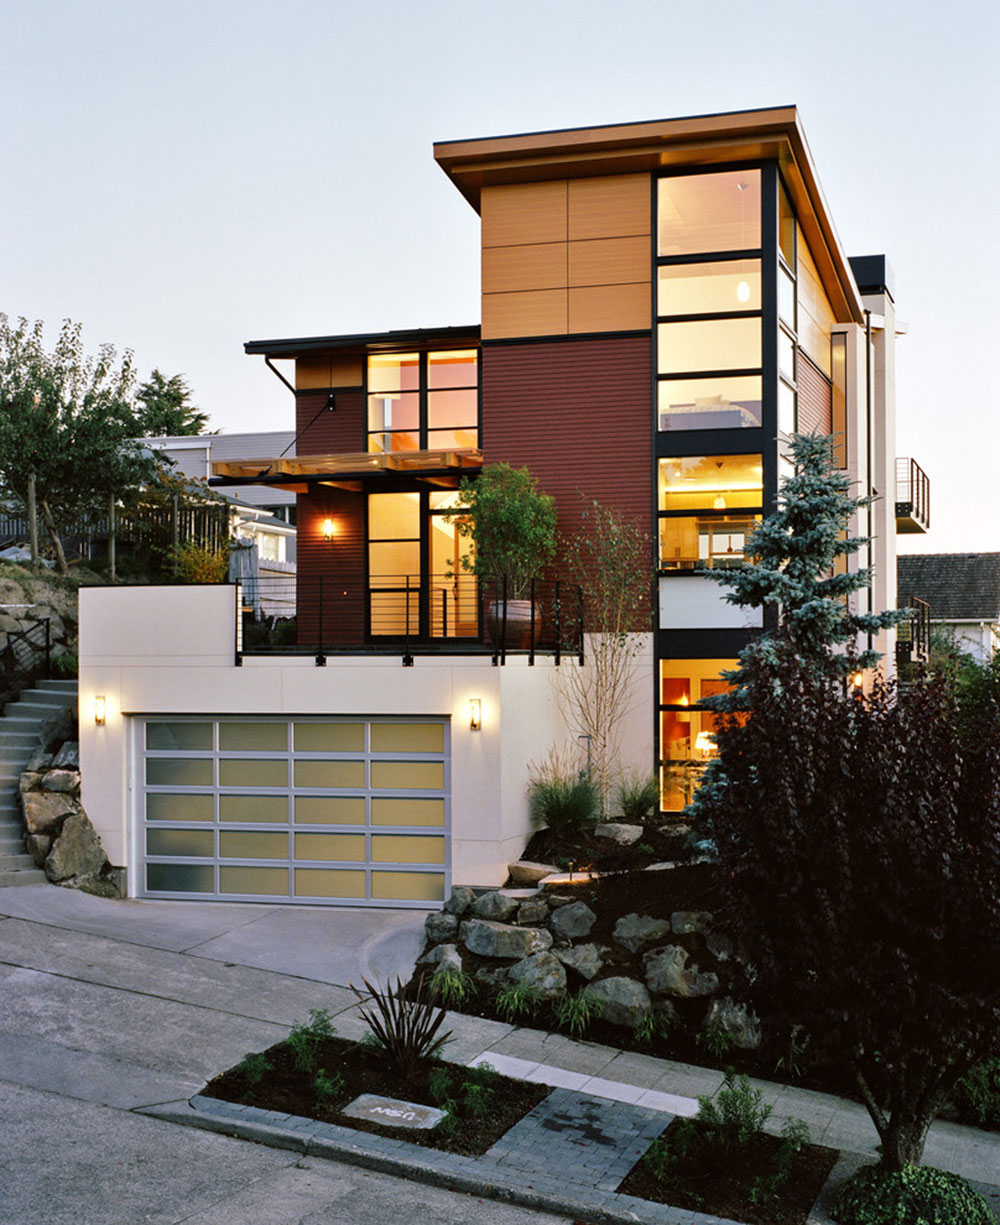 Working with an Architect to Design Your House2 Working with an Architect to Design Your House